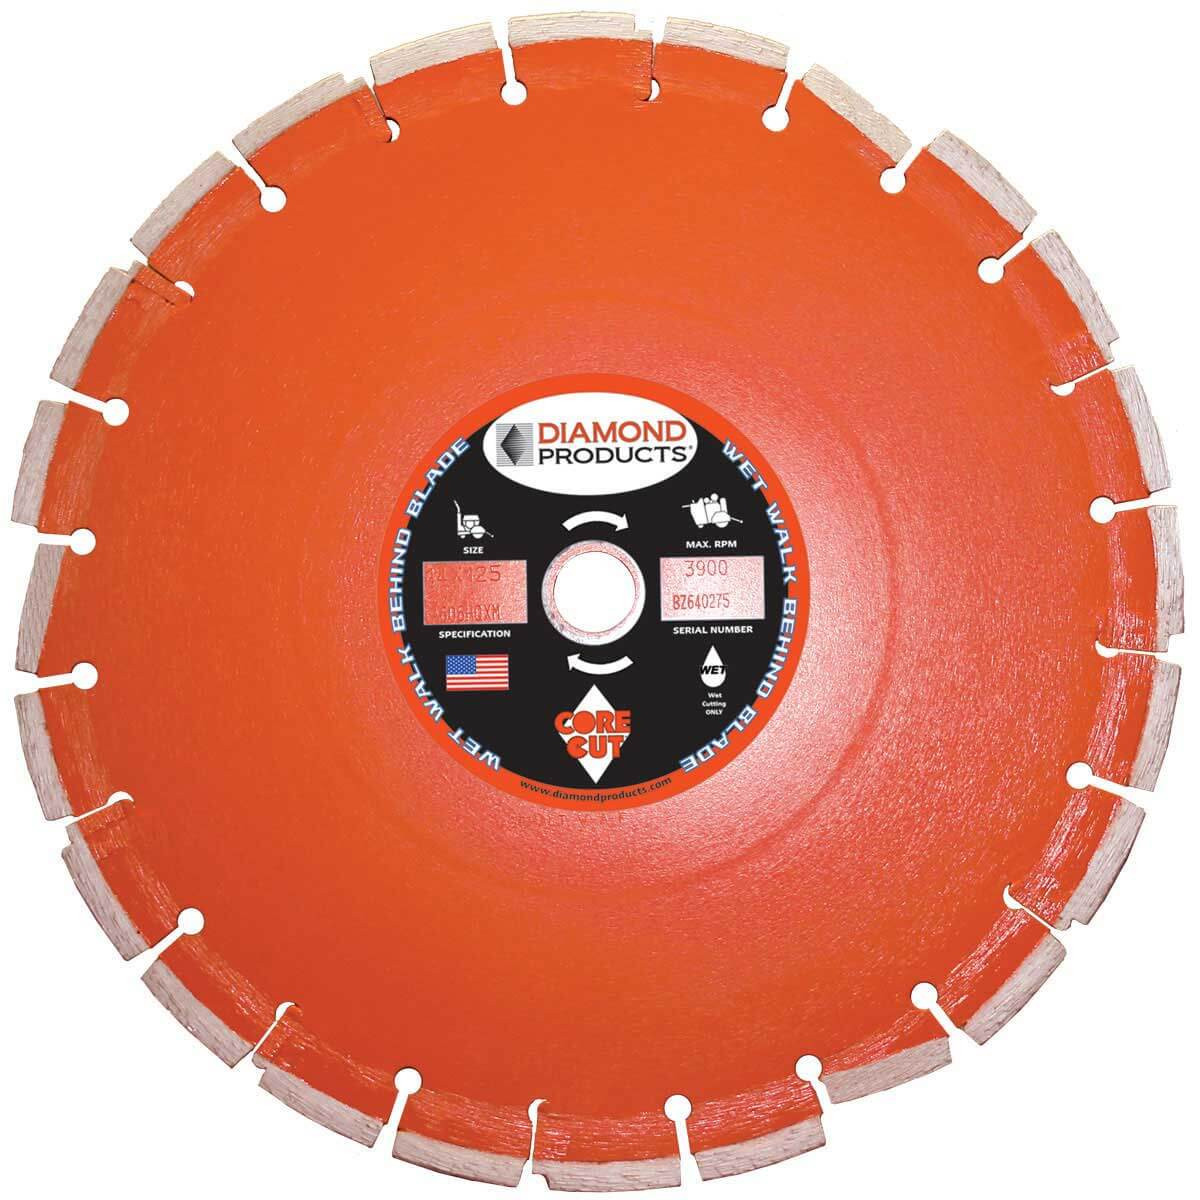 Diamond Products Heavy Duty Orange Wet Cured Concrete Blades